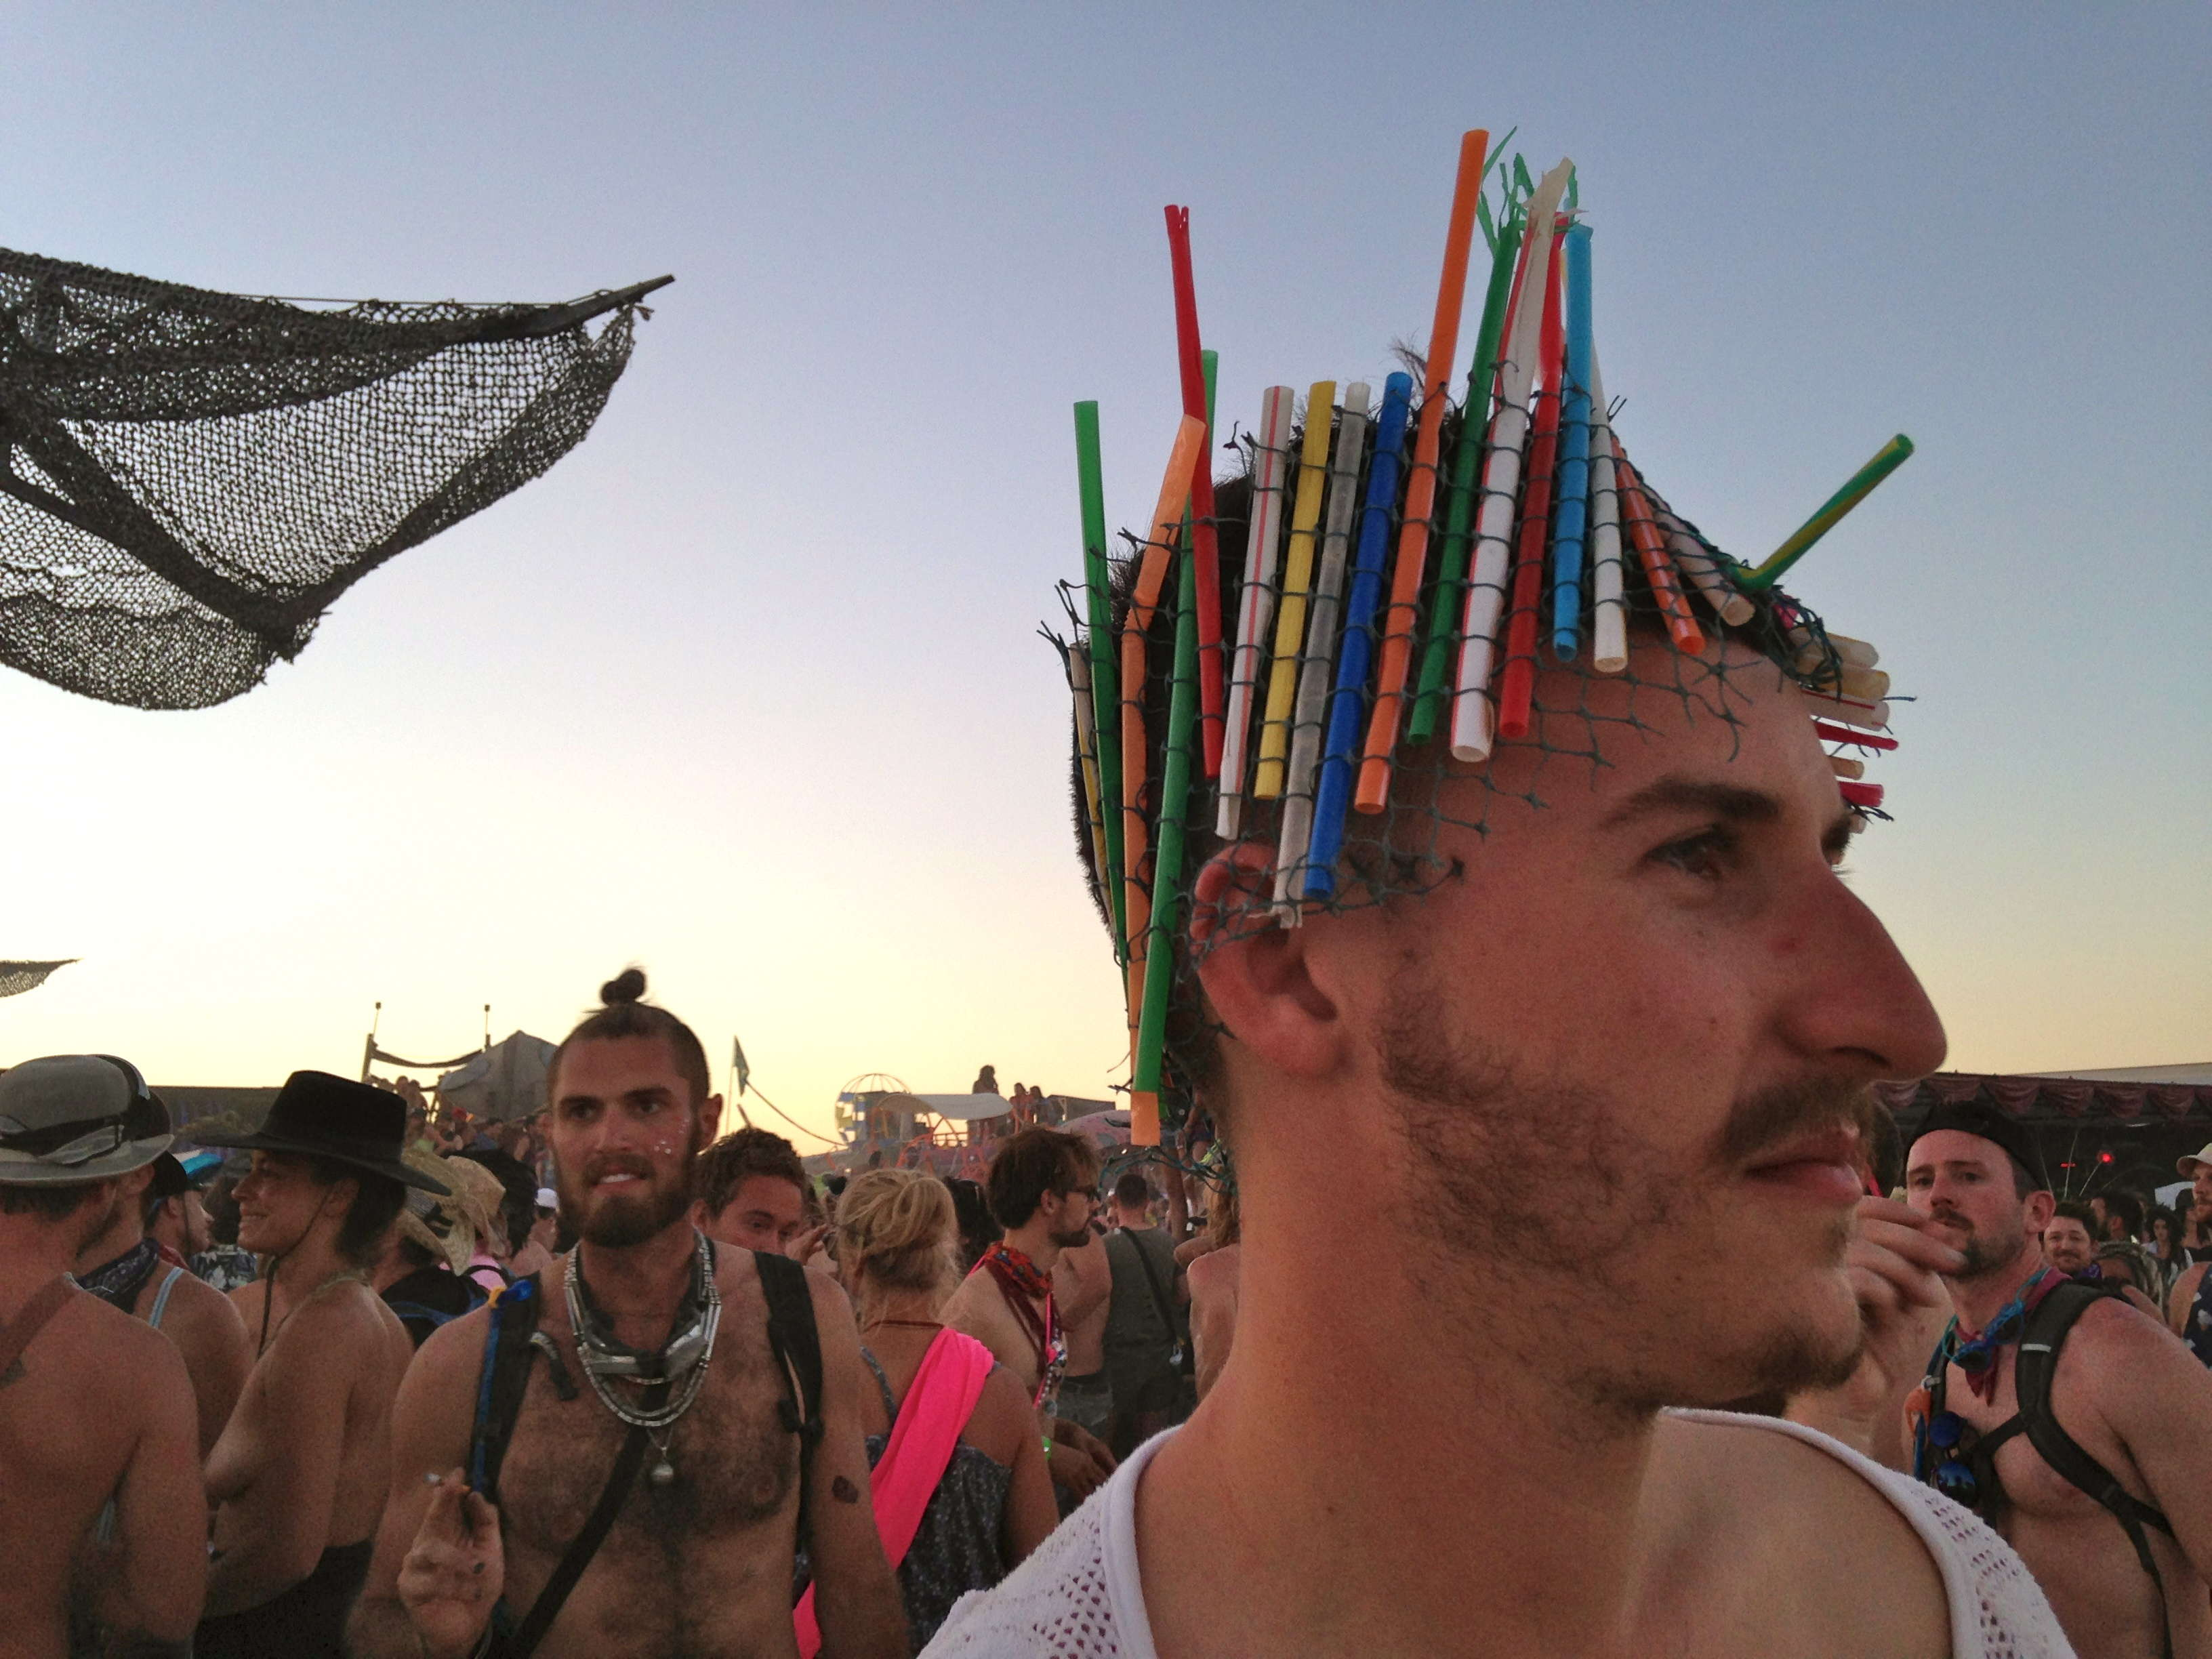 Hats Made Of Straws Business Insider India